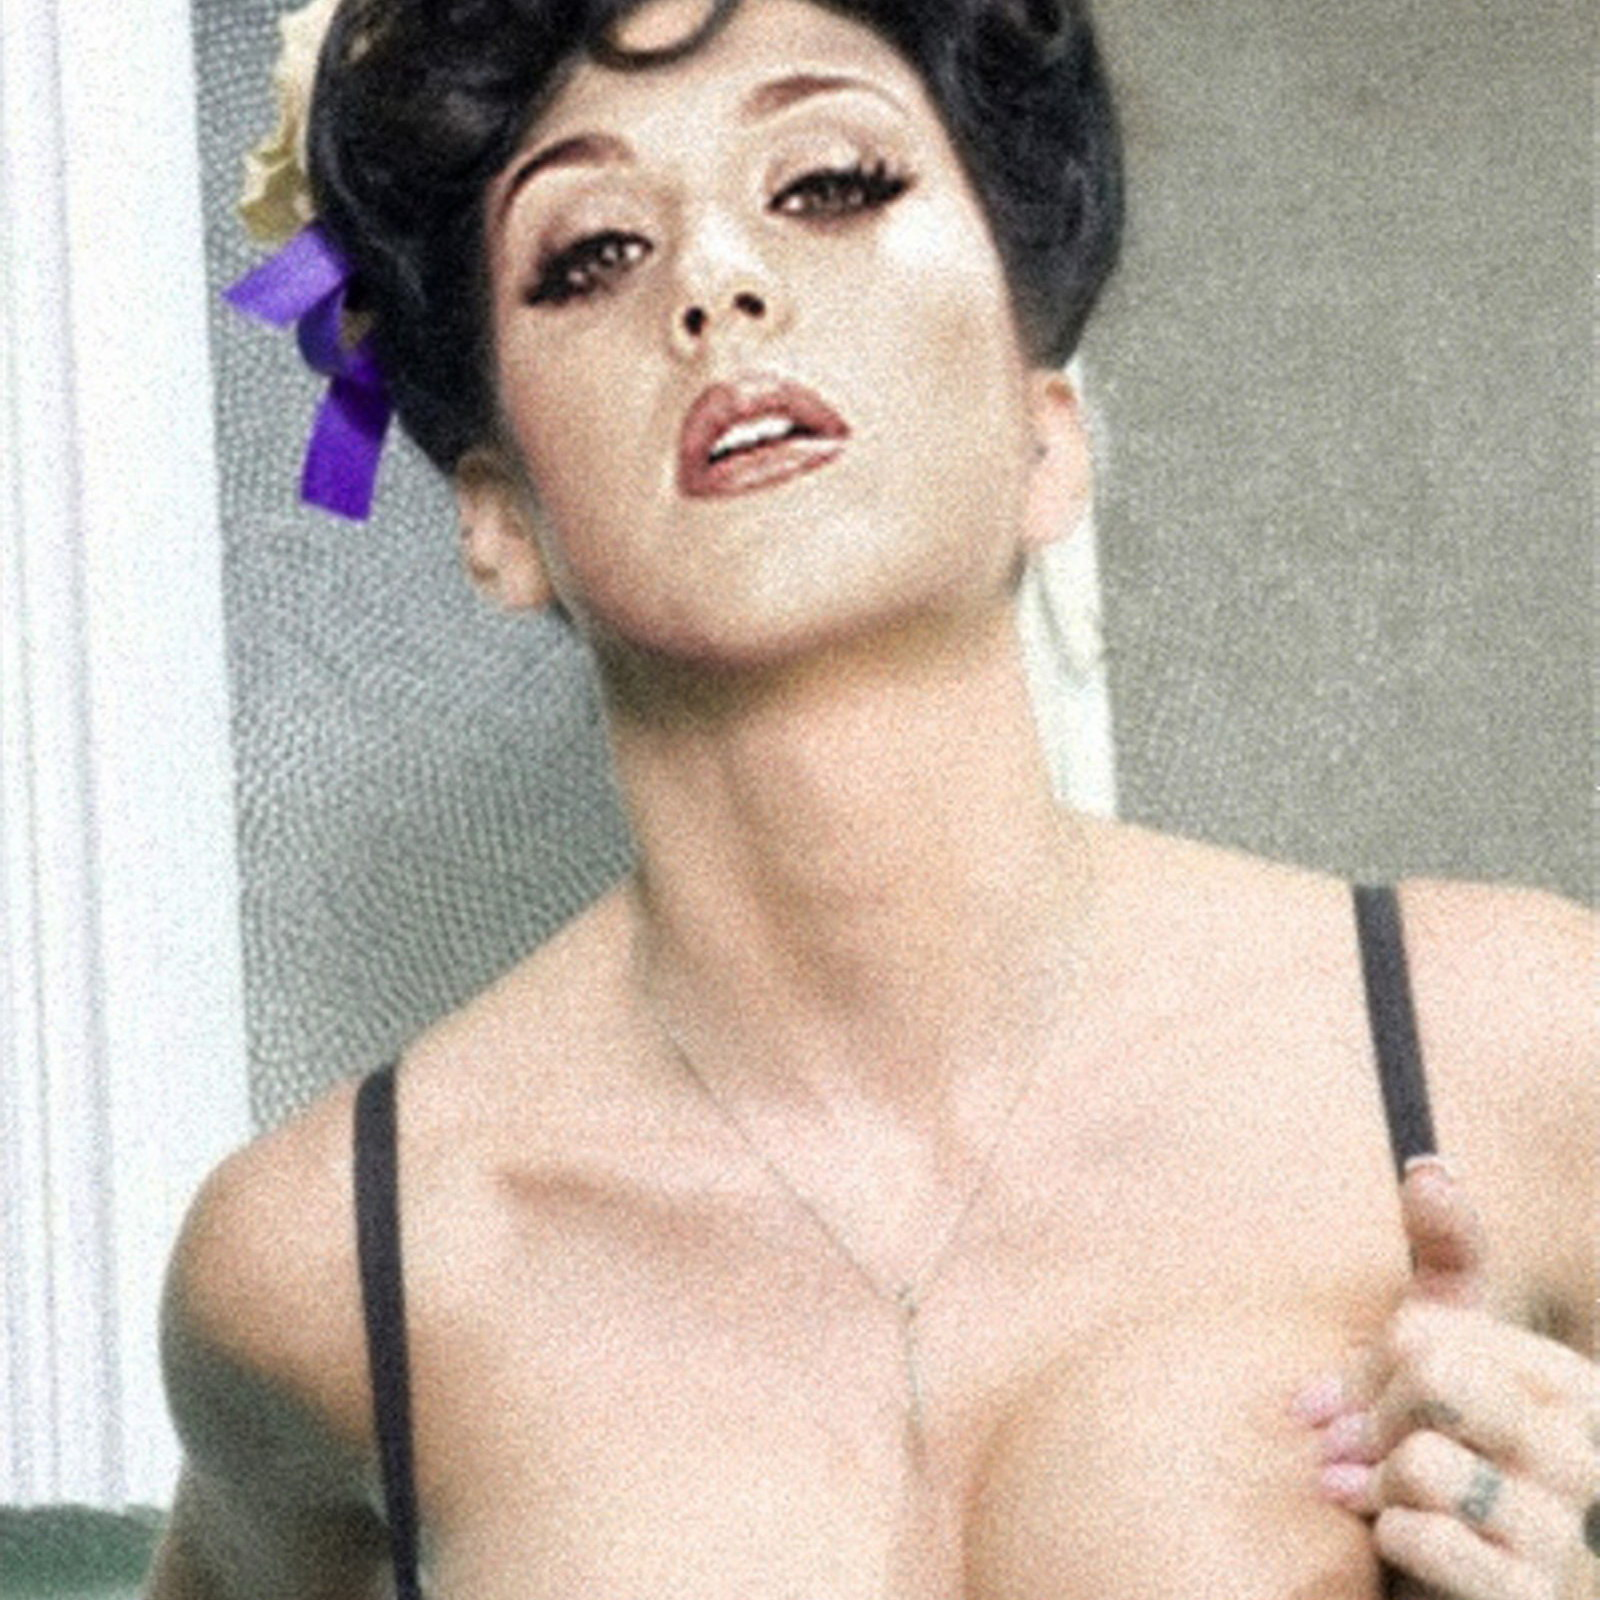 http://3.bp.blogspot.com/-bN6A0kk2jxo/T3RPT5yudjI/AAAAAAAAAHo/NBH_JxA-Mac/s1600/Katy+Perry+topless+in+private+Twitter+photo+HQ.jpg